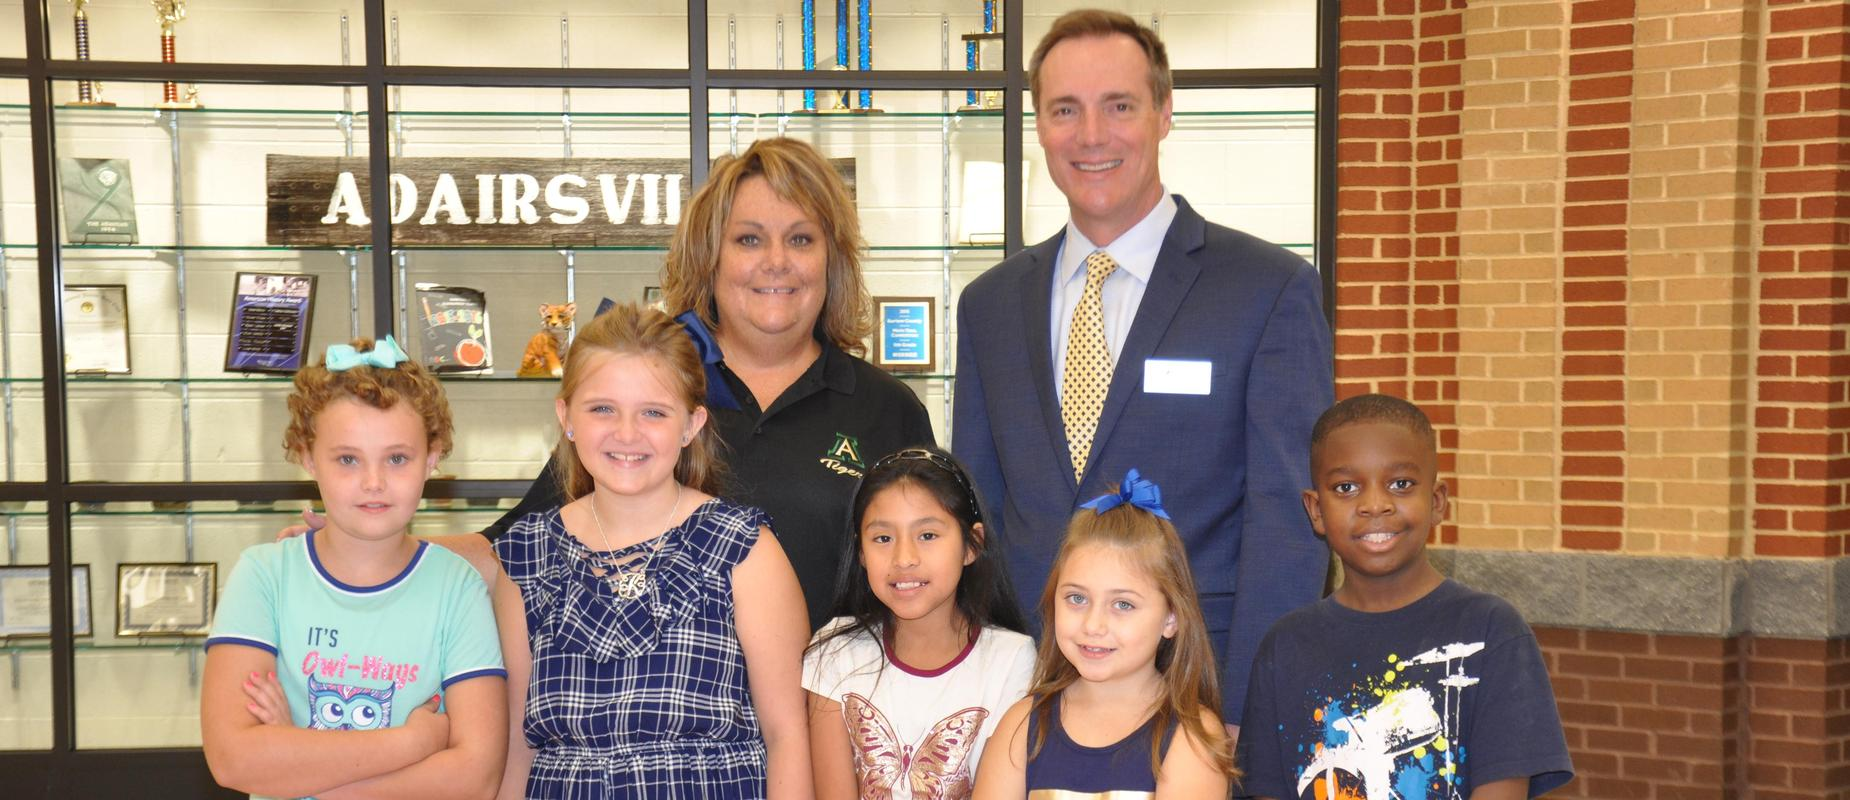 Back to school time at Adairsville Elementary